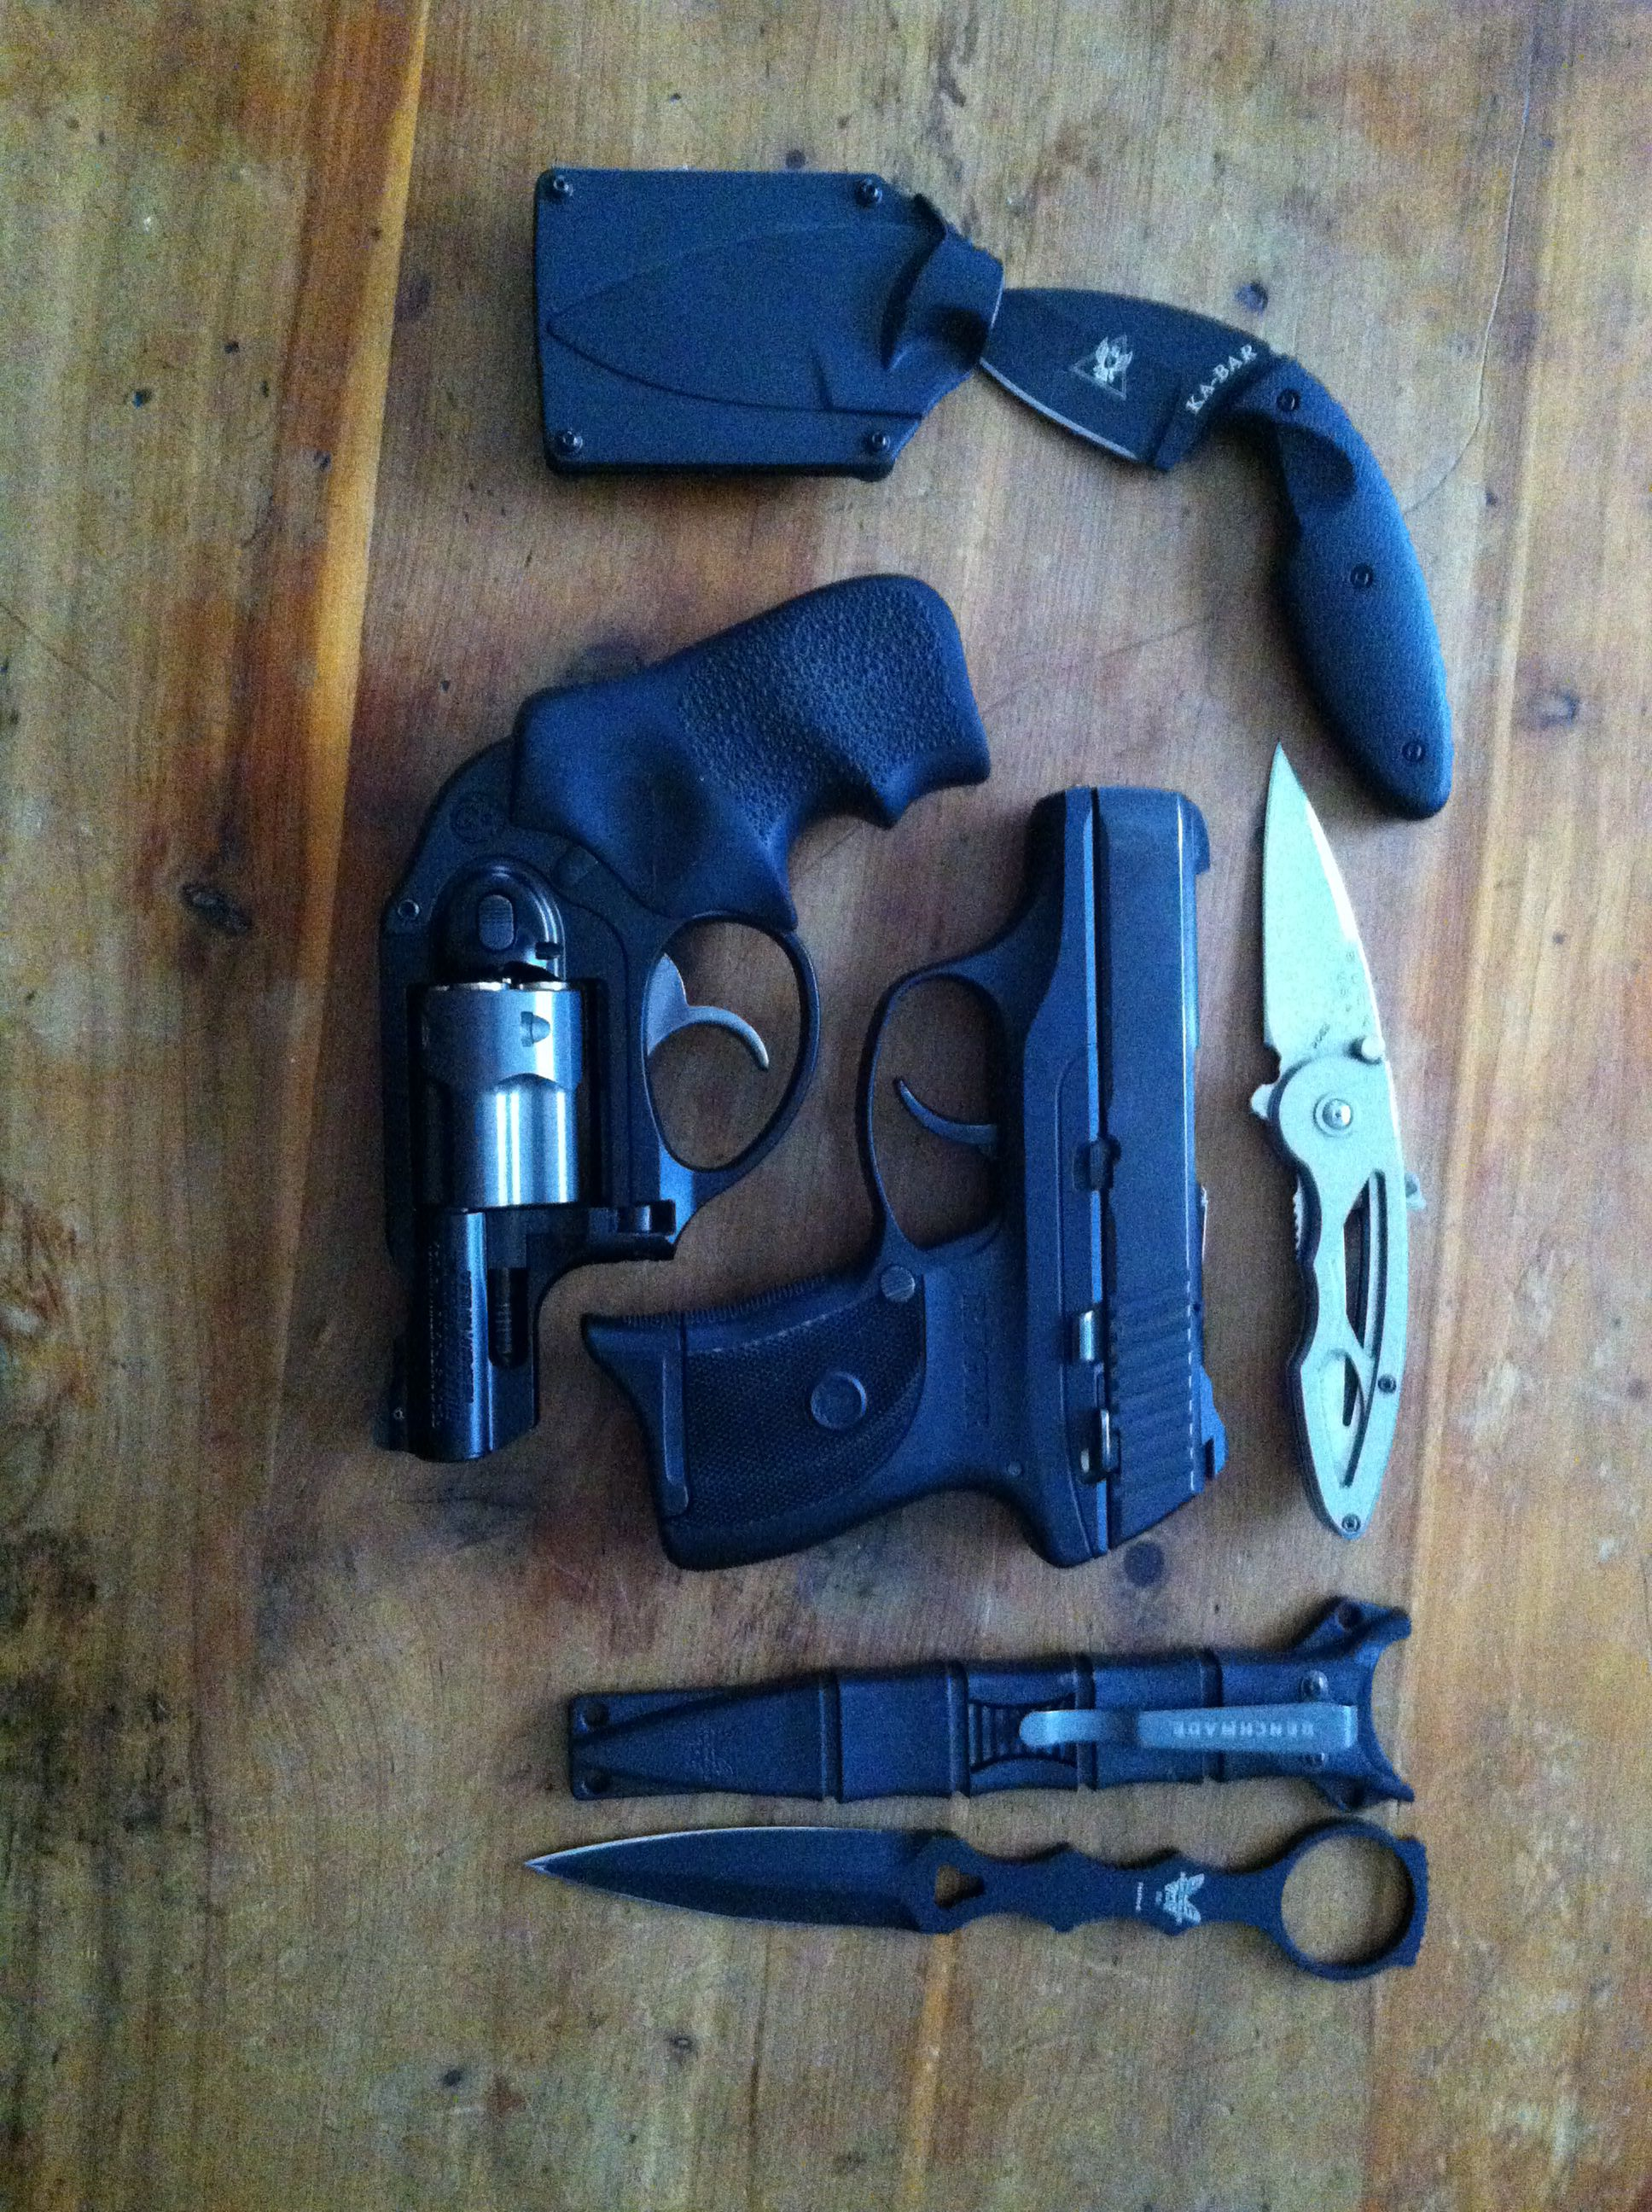 My EDC  Ruger LC9 primary: Ruger LCR in  38 Special as back